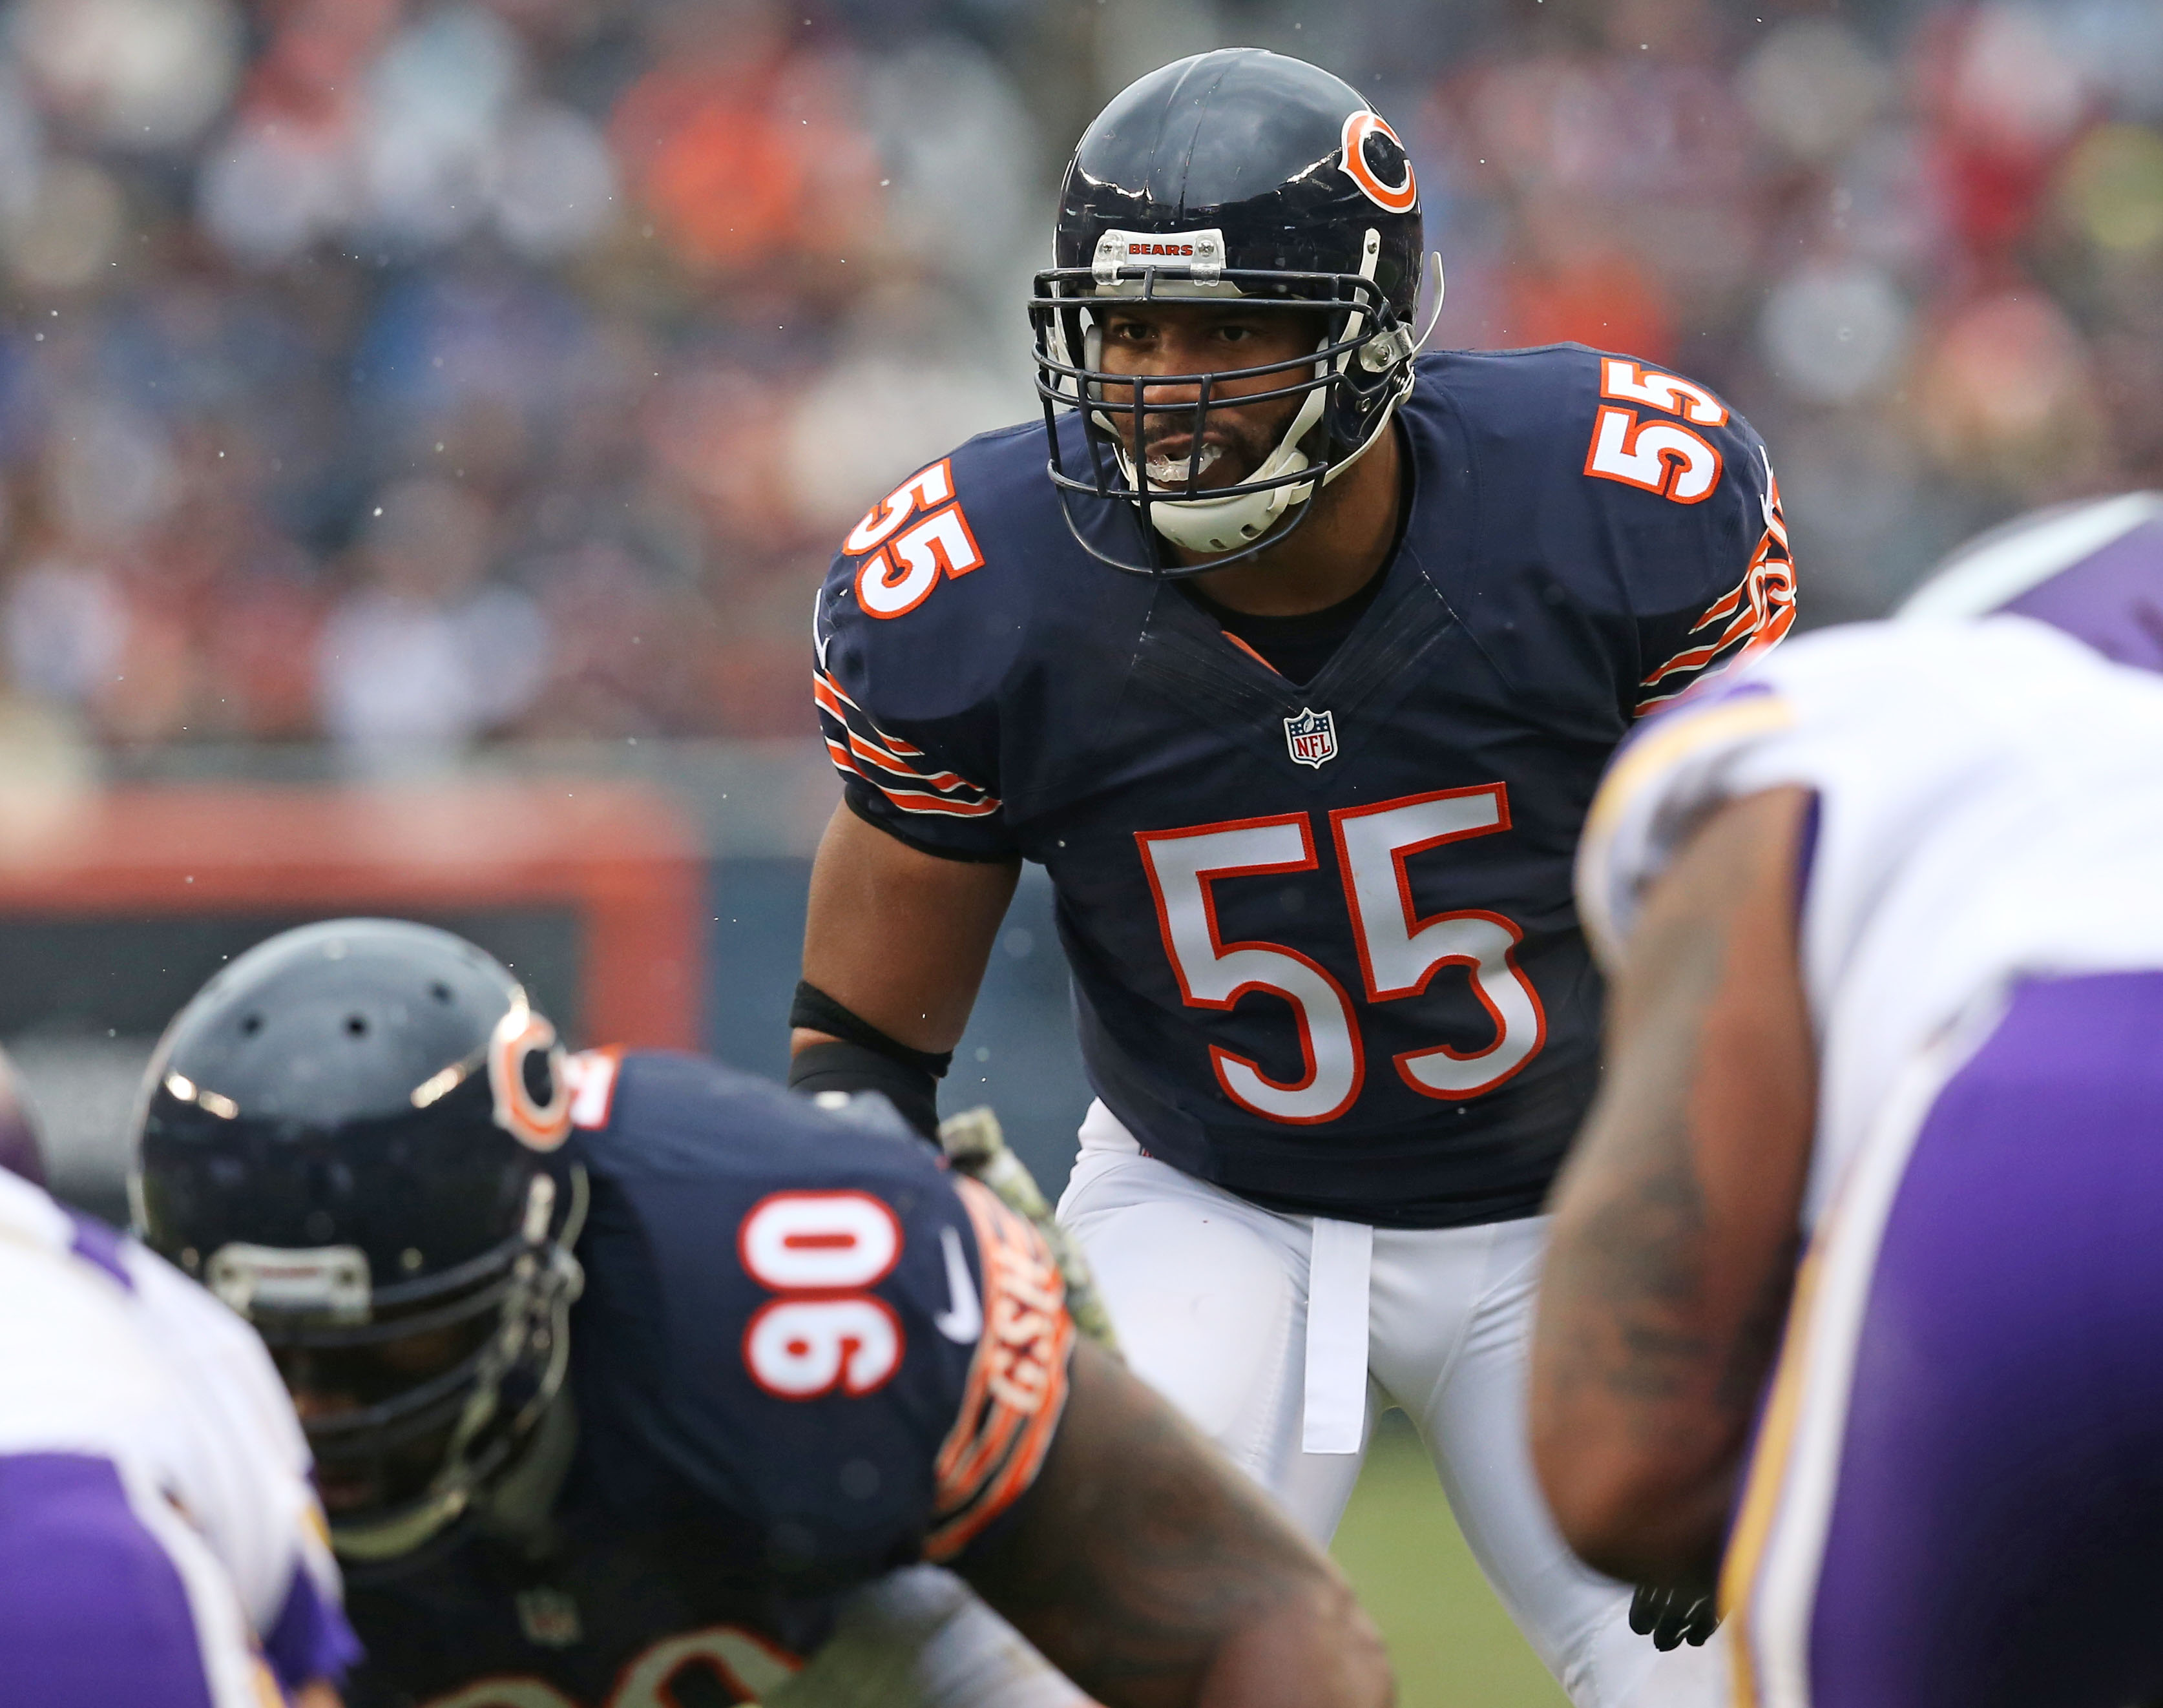 lance-briggs-arizona-wildcats-chicago-bears-nfl-hall-of-fame-nominee-2020